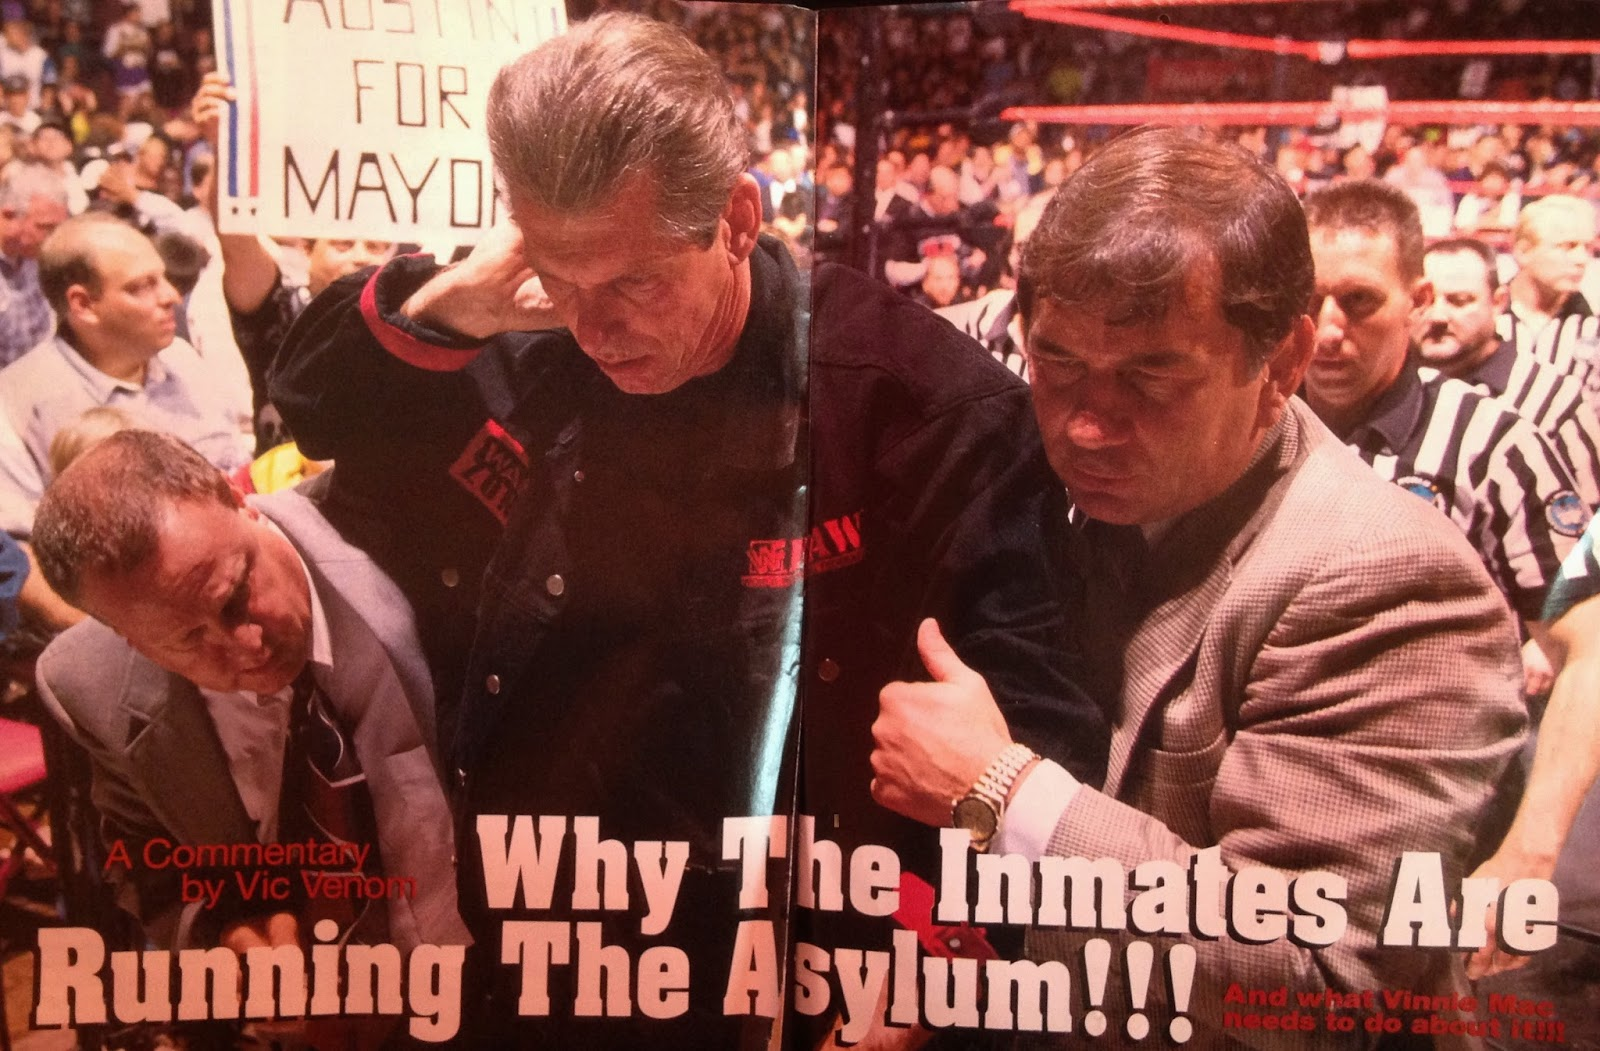 WWE: WWF RAW MAGAZINE - January 1998 - Why the inmates are running the asylum